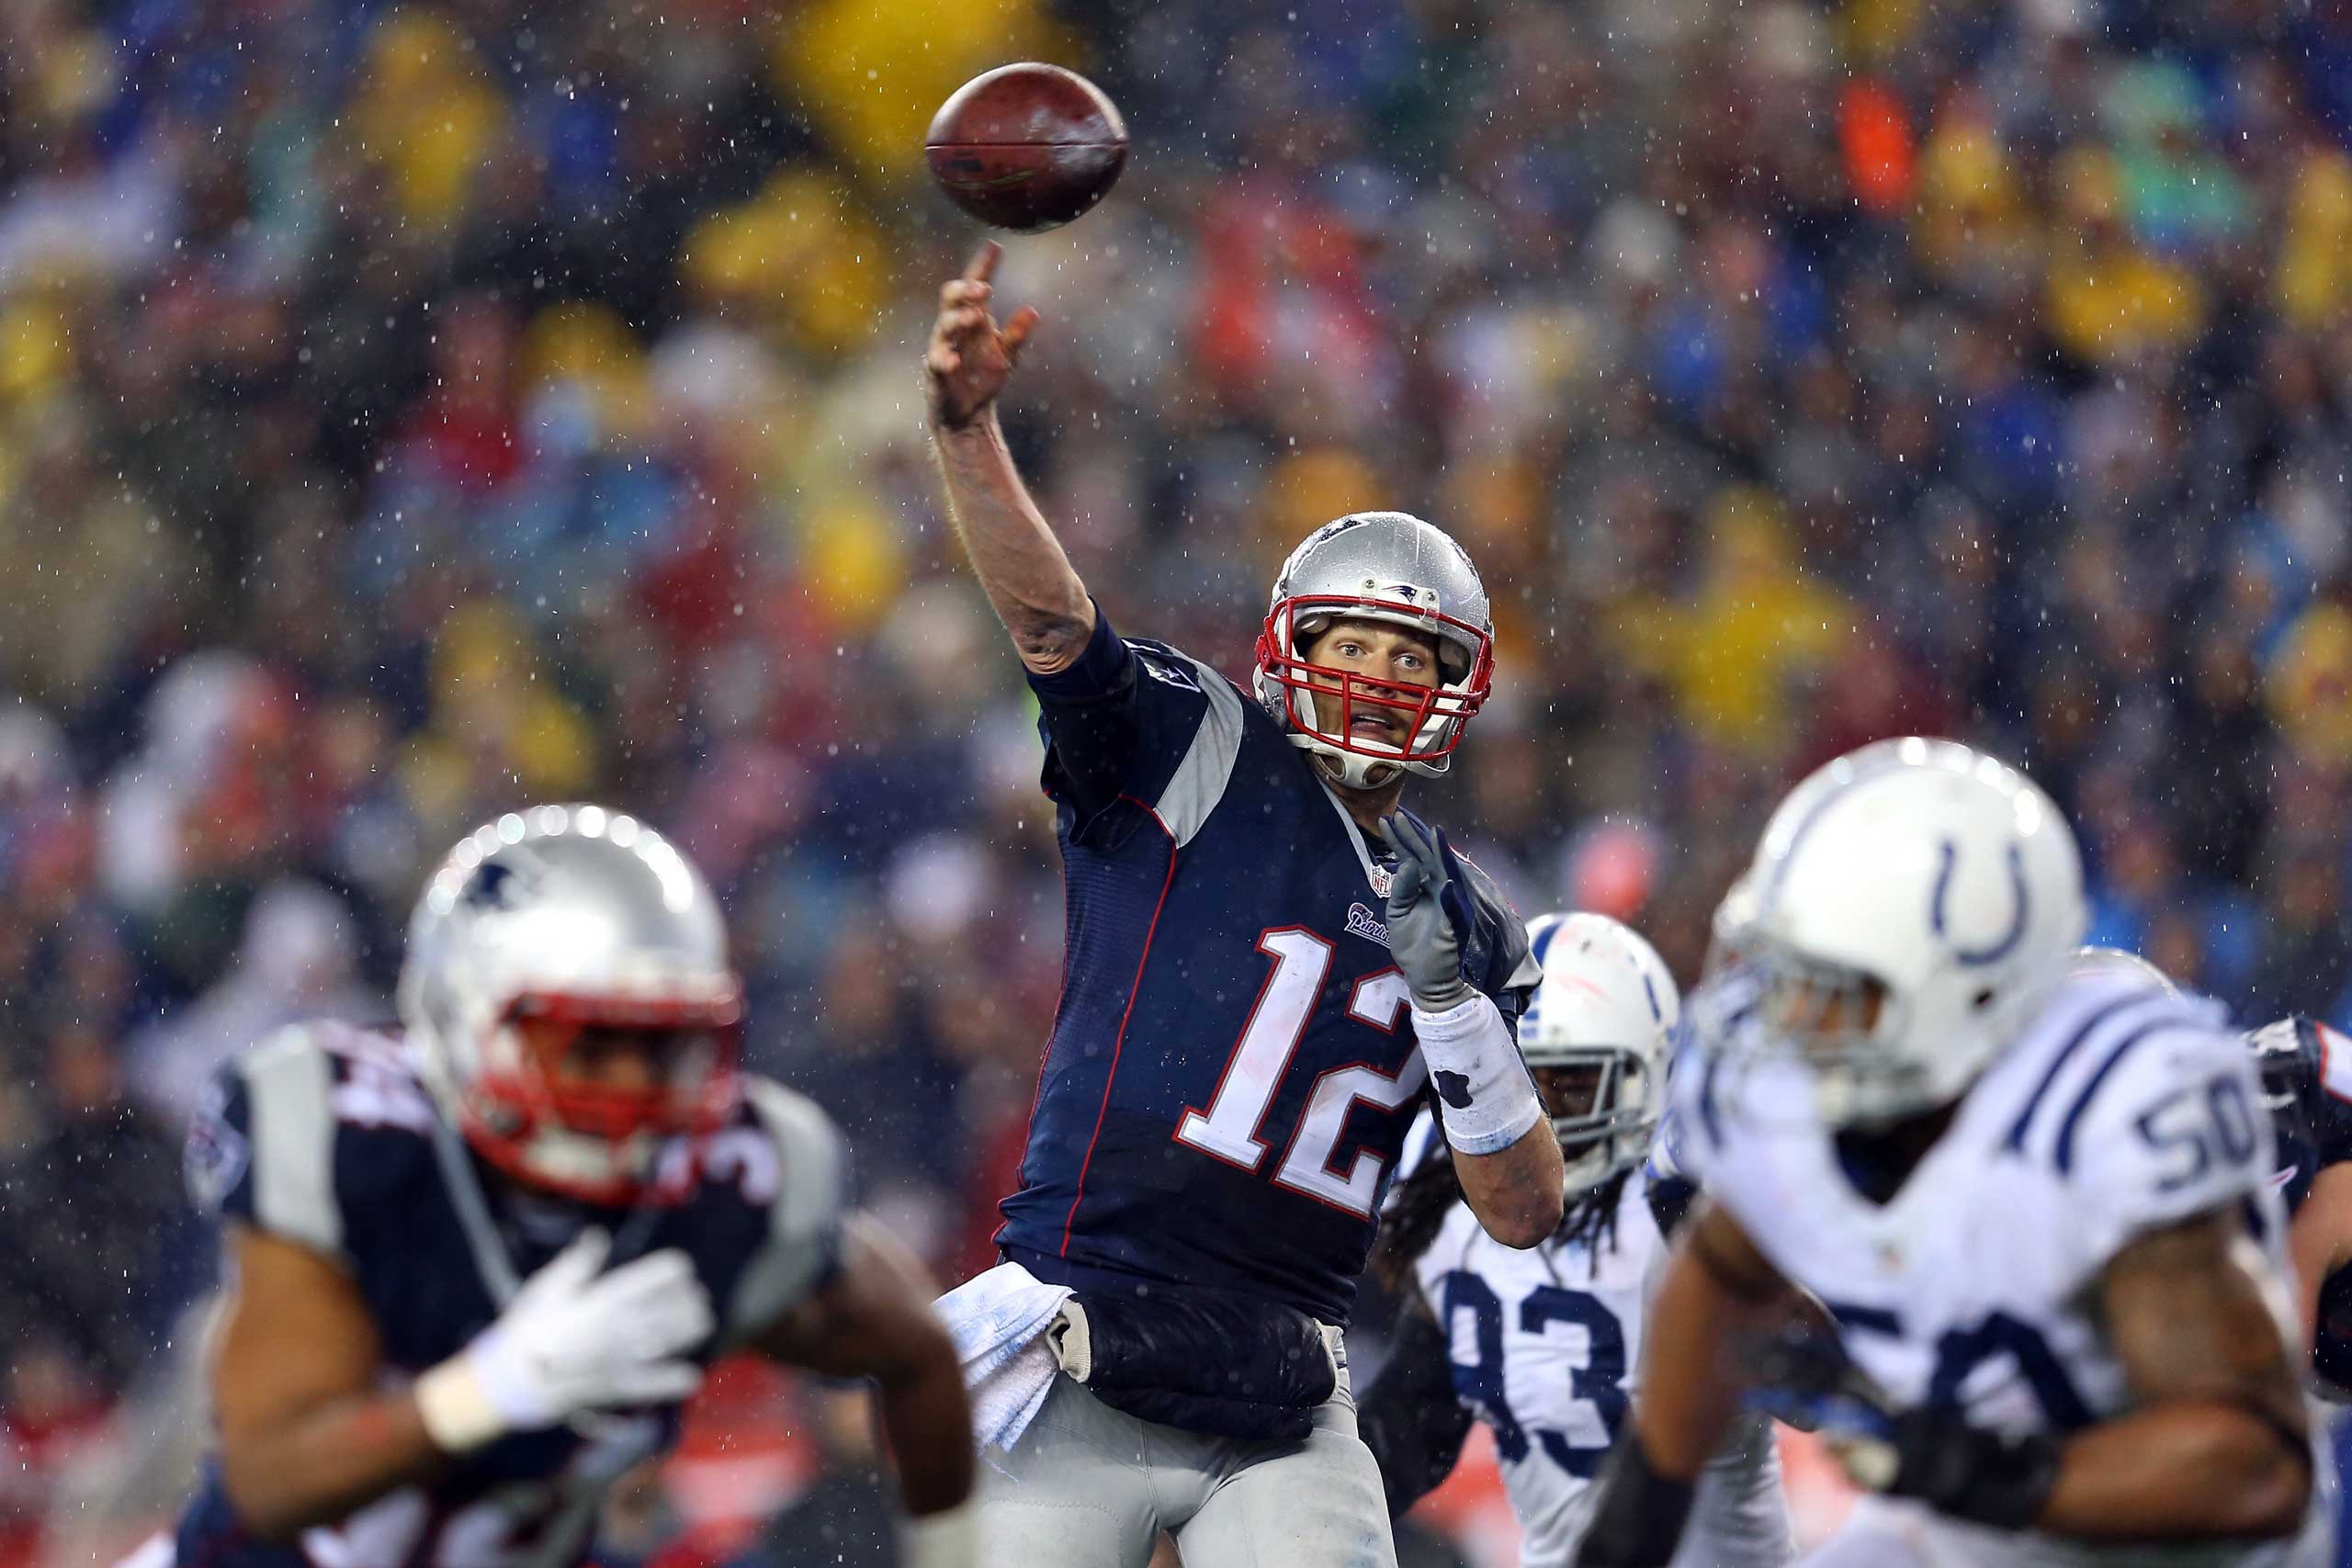 Tom Brady of the New England Patriots throws a touchdown pass against the Indianapolis Colts during the 2015 AFC Championship Game on Jan. 18, 2015 in Foxboro, Mass.